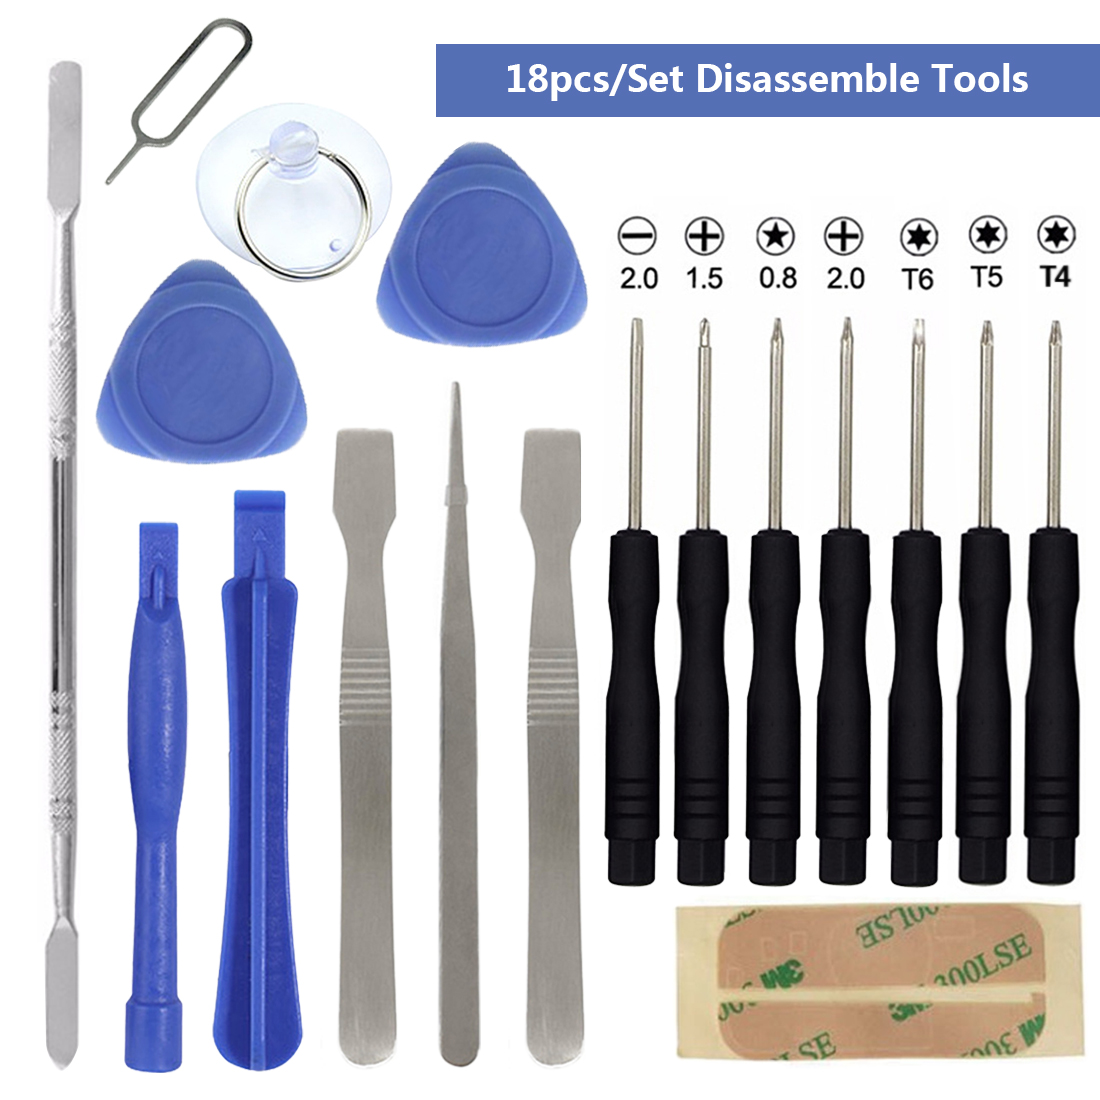 Tools Kit 18 in 1 Smart Mobile Repair Opening Smartphone Disassemble Screwdriver Set For Cell Phone Hand Tools Set